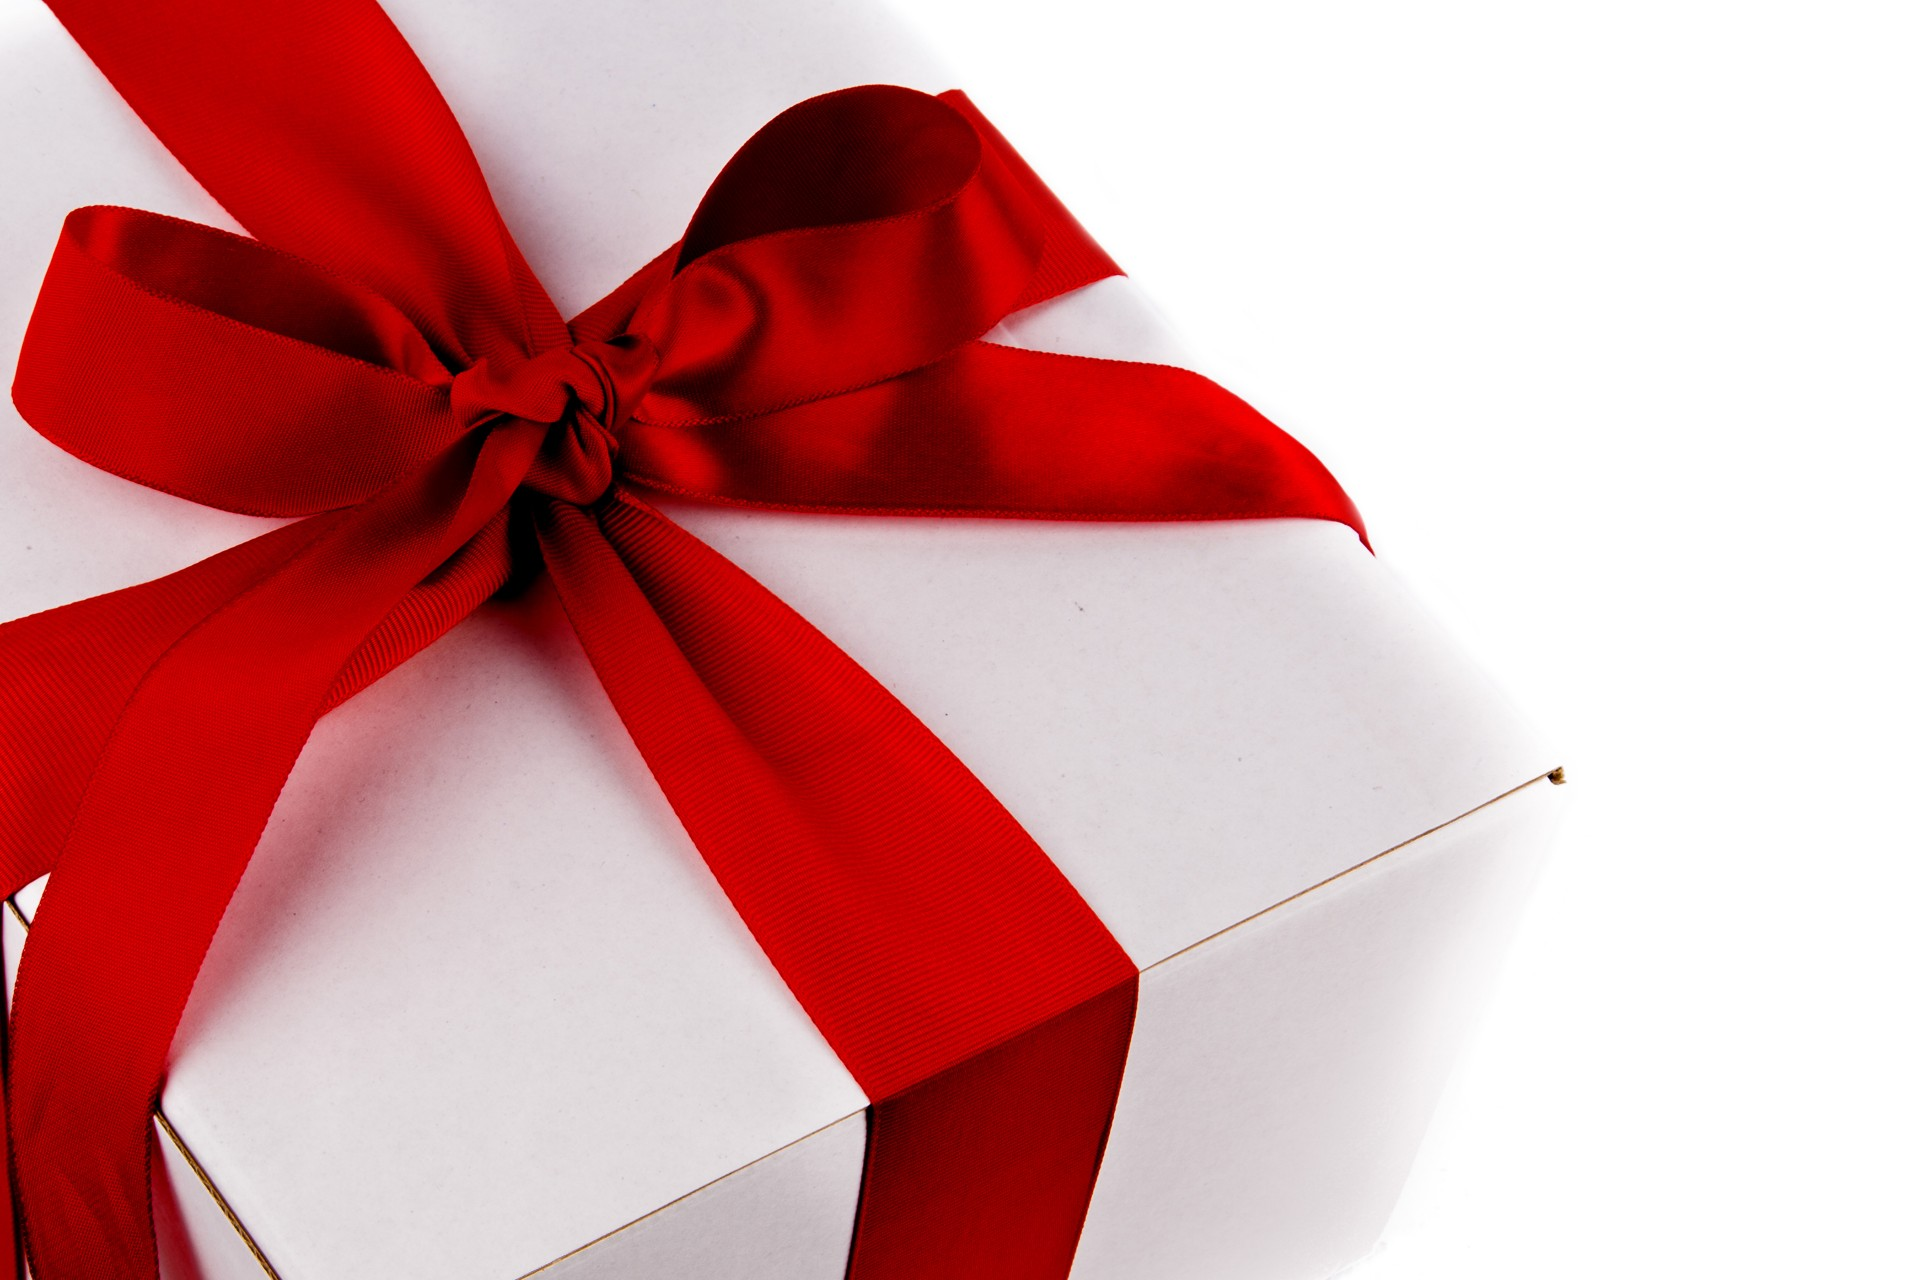 Gifts for people who have Alzheimer's